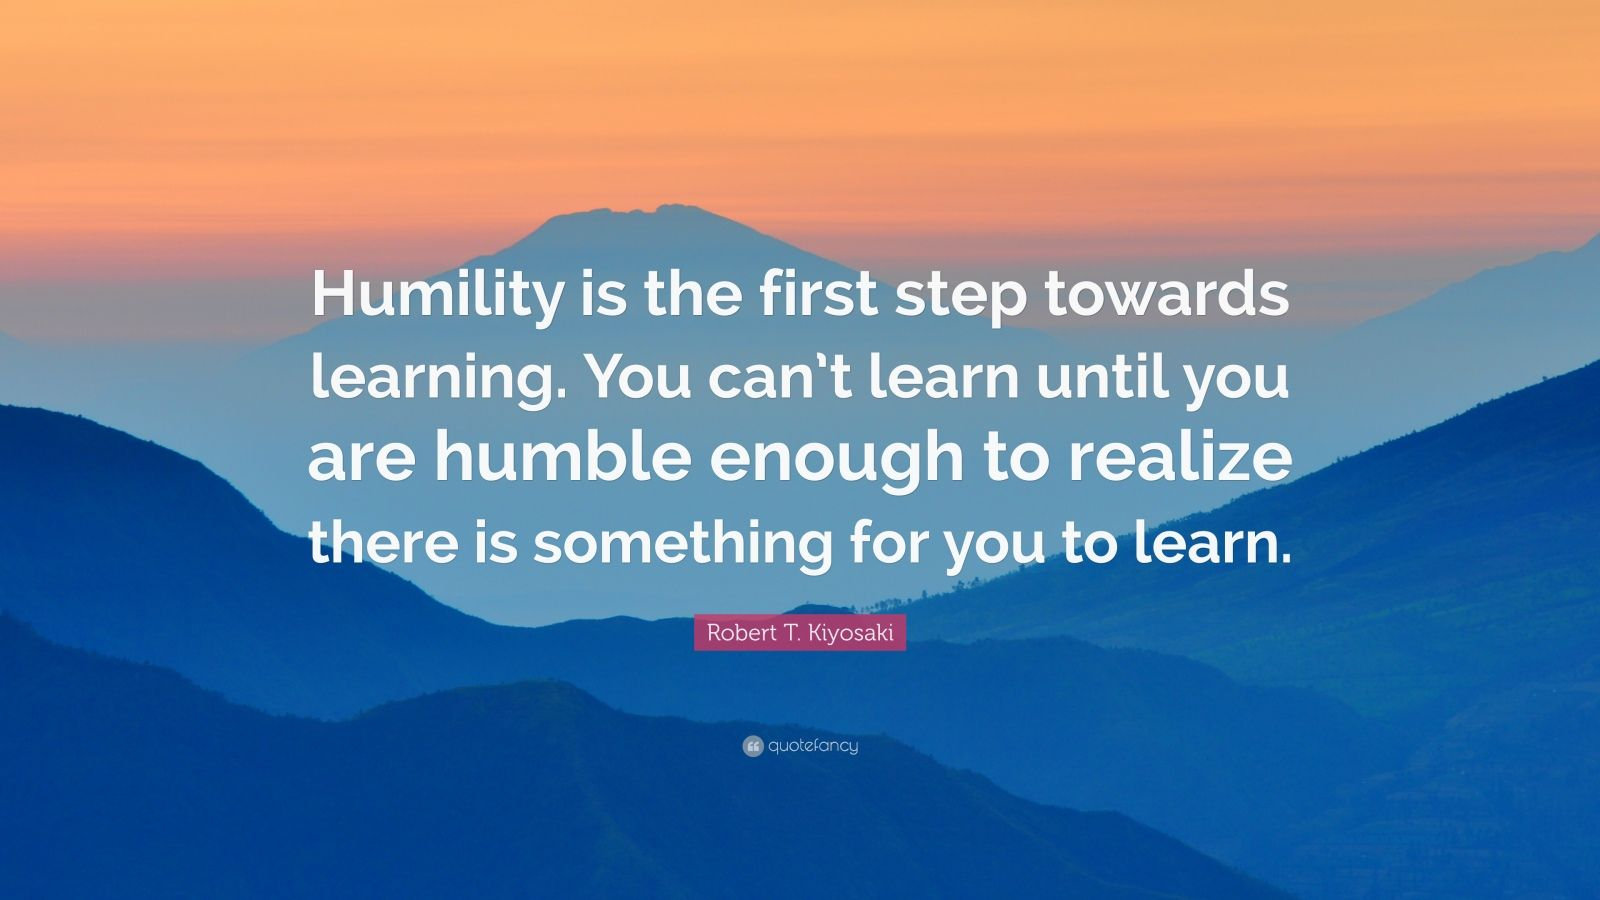 """Robert T. Kiyosaki Quote: """"Humility is the first step towards learning. You can't learn until you are humble enough to realize there is something for you to learn."""""""